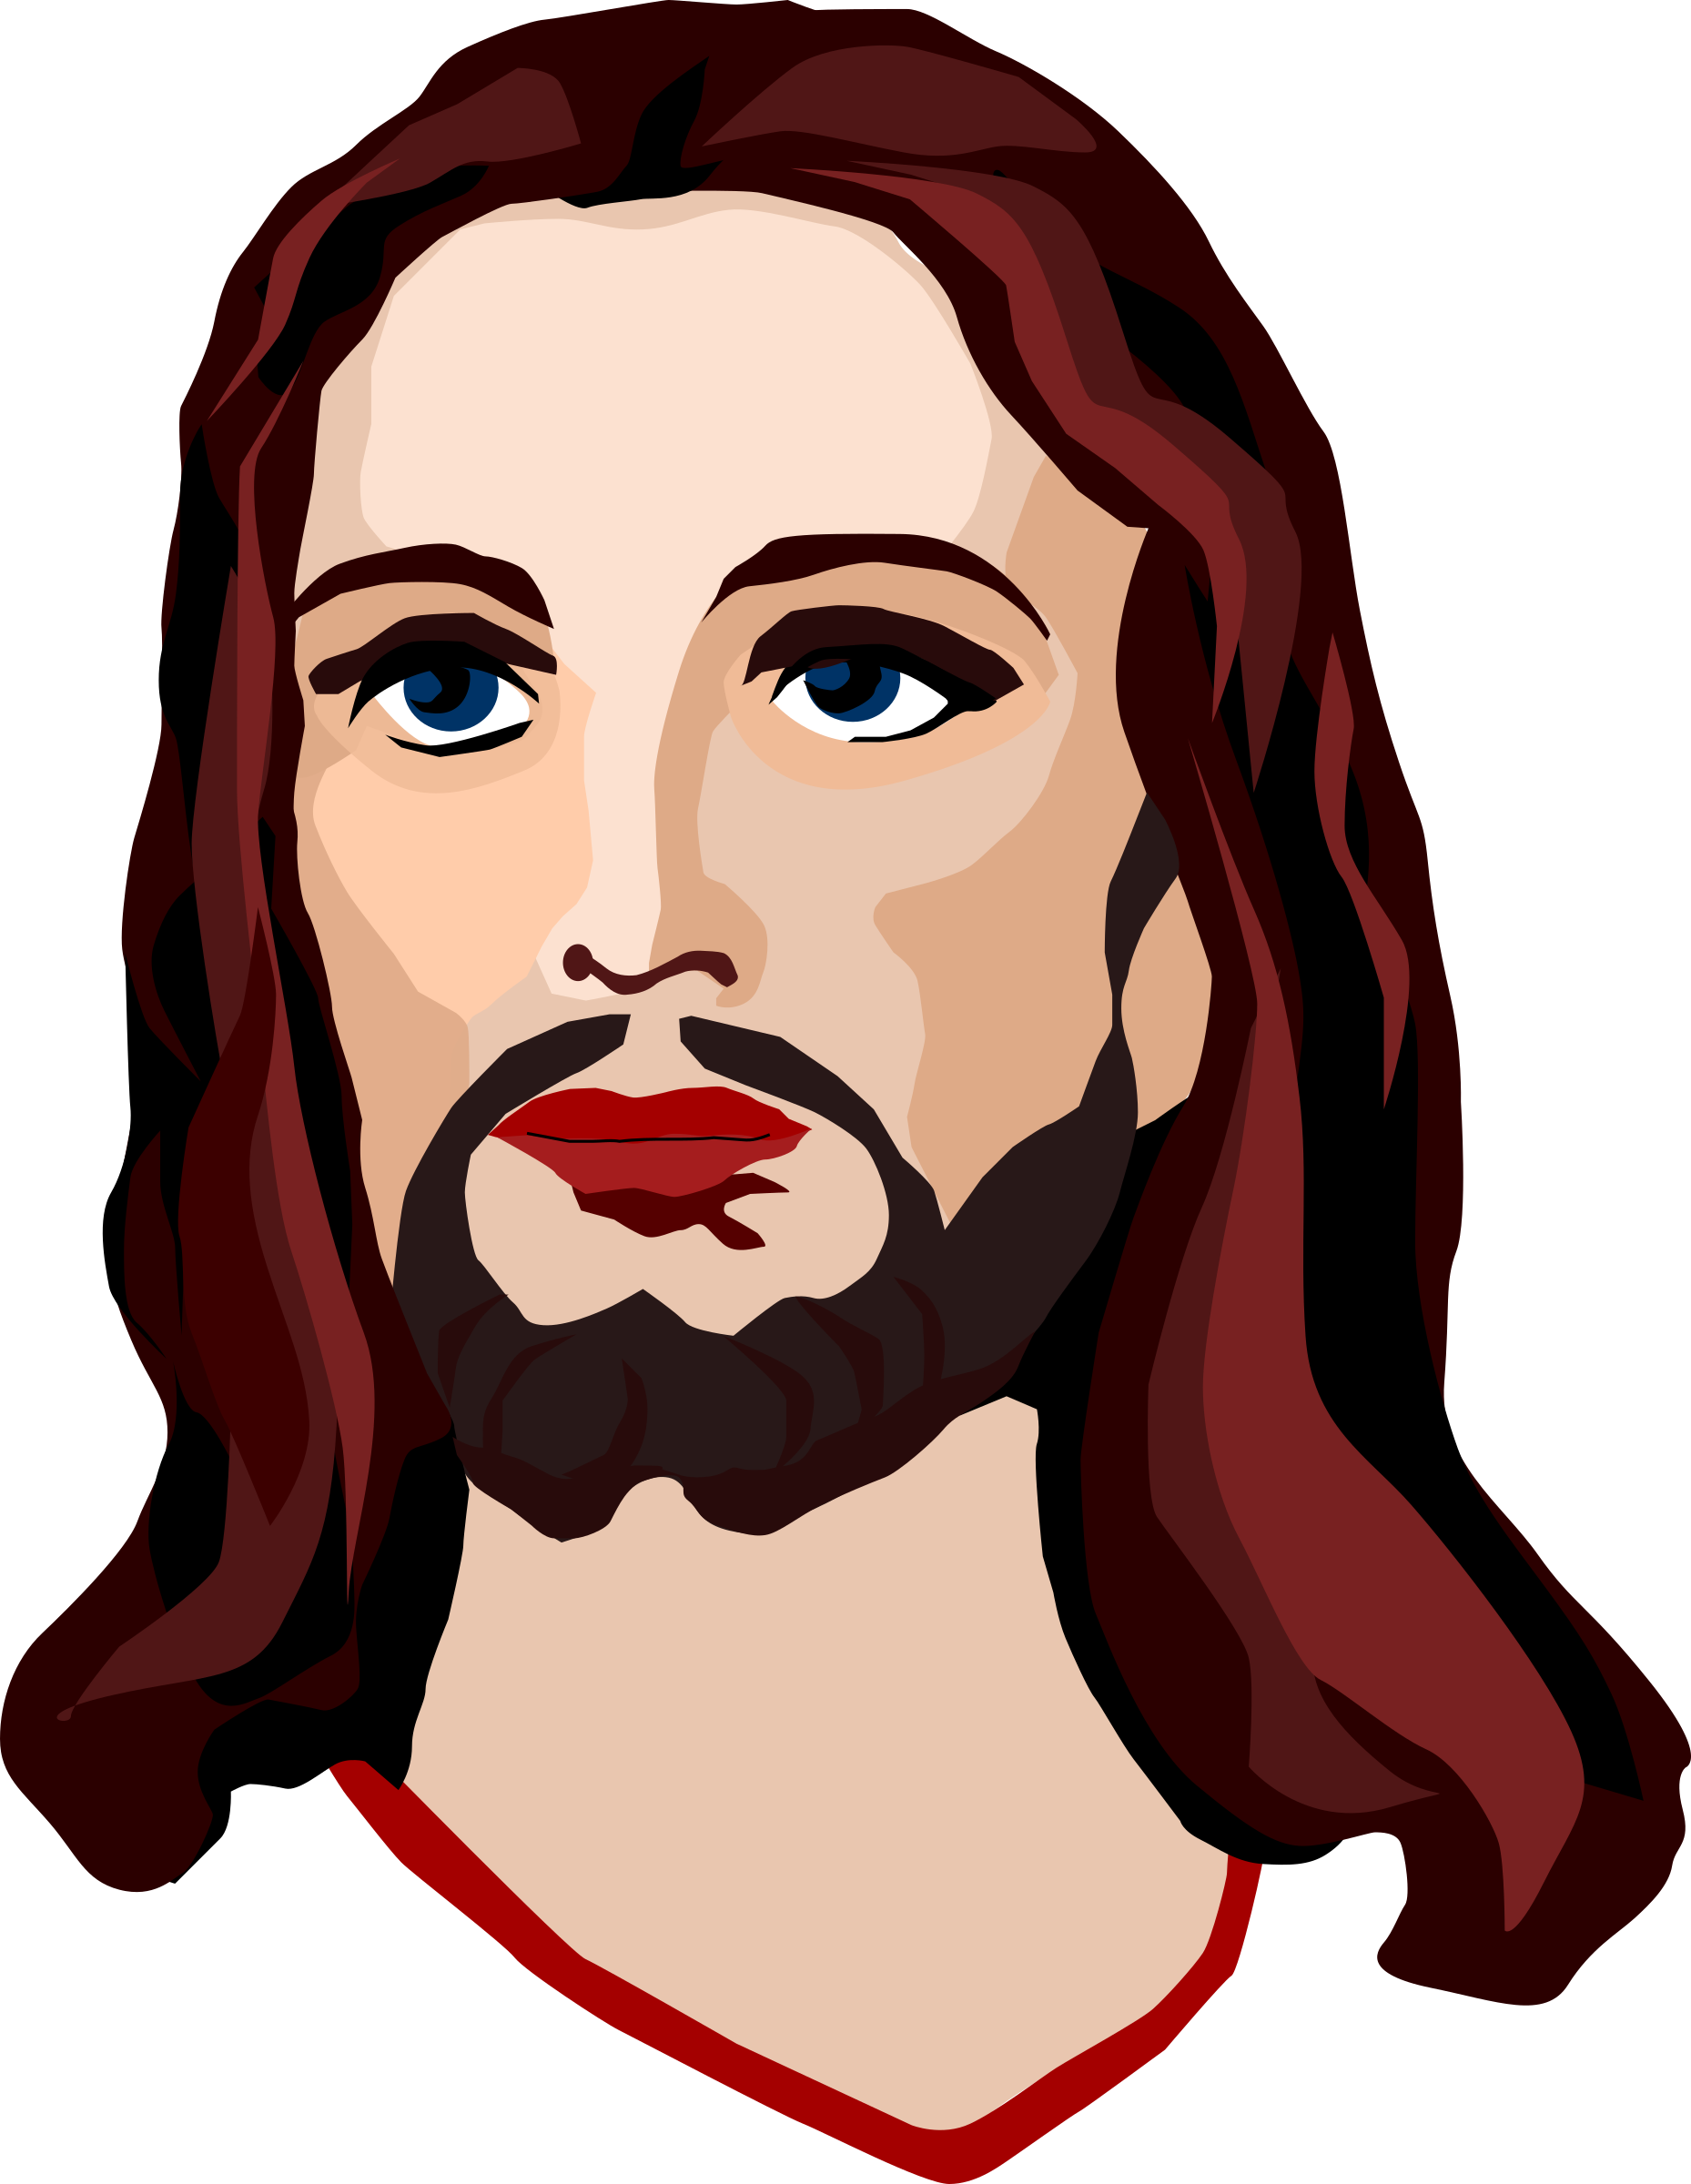 Jesus clipart transparent background. Christ icon web icons